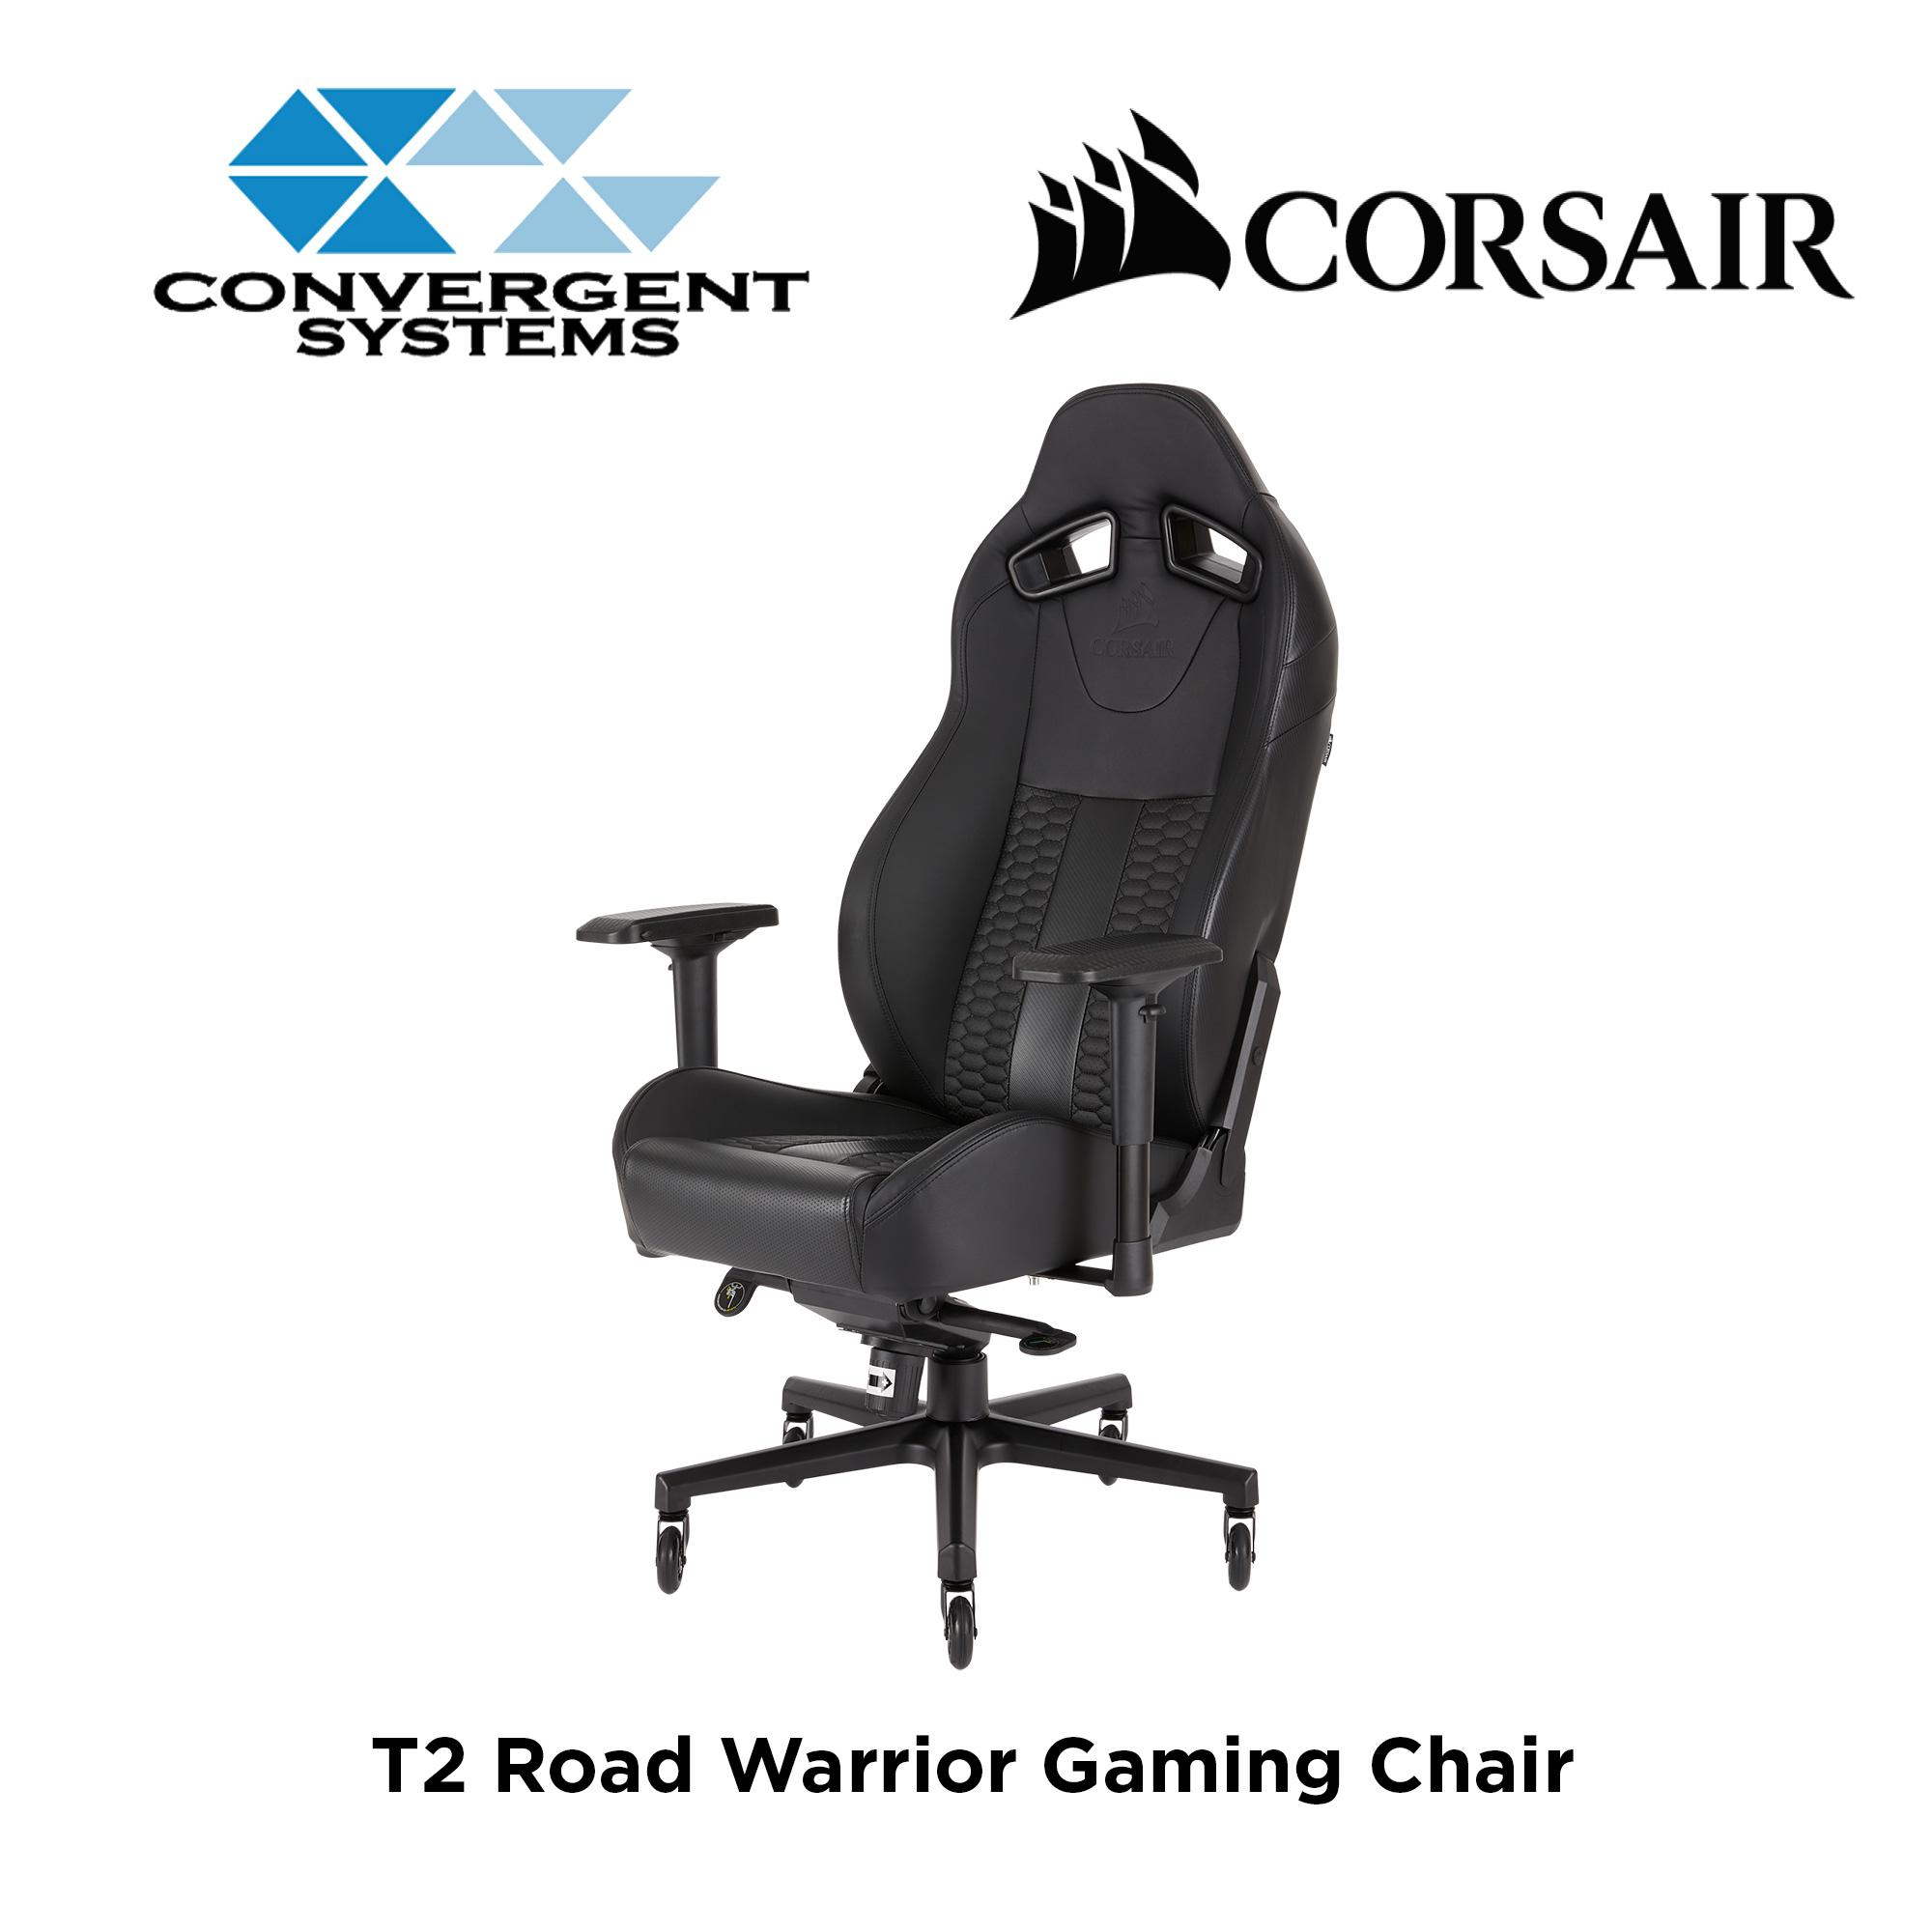 Corsair T2 Road Warrior Gaming Chair - Black / Black Stripes